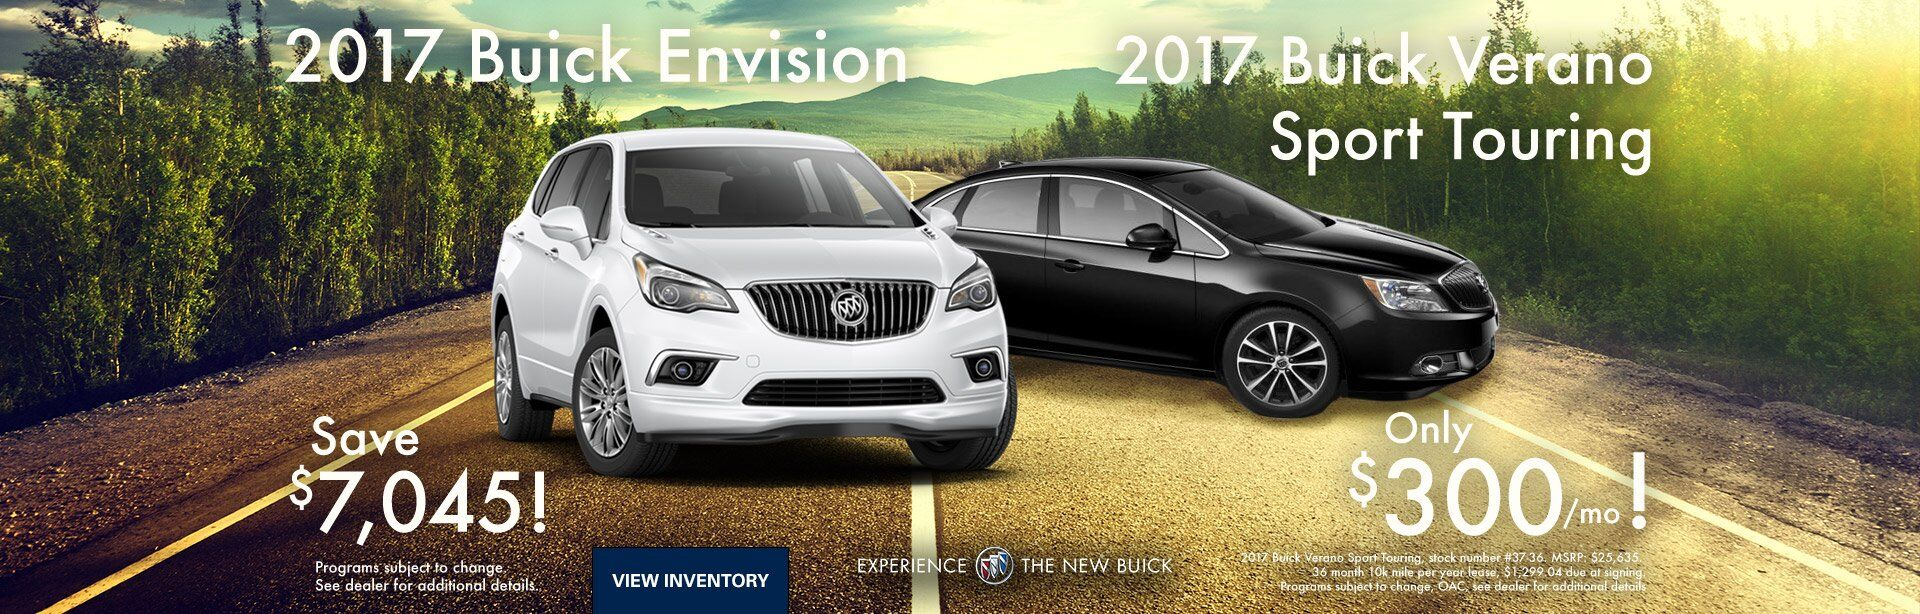 2017 Buick Envision and Verano Sport Touring